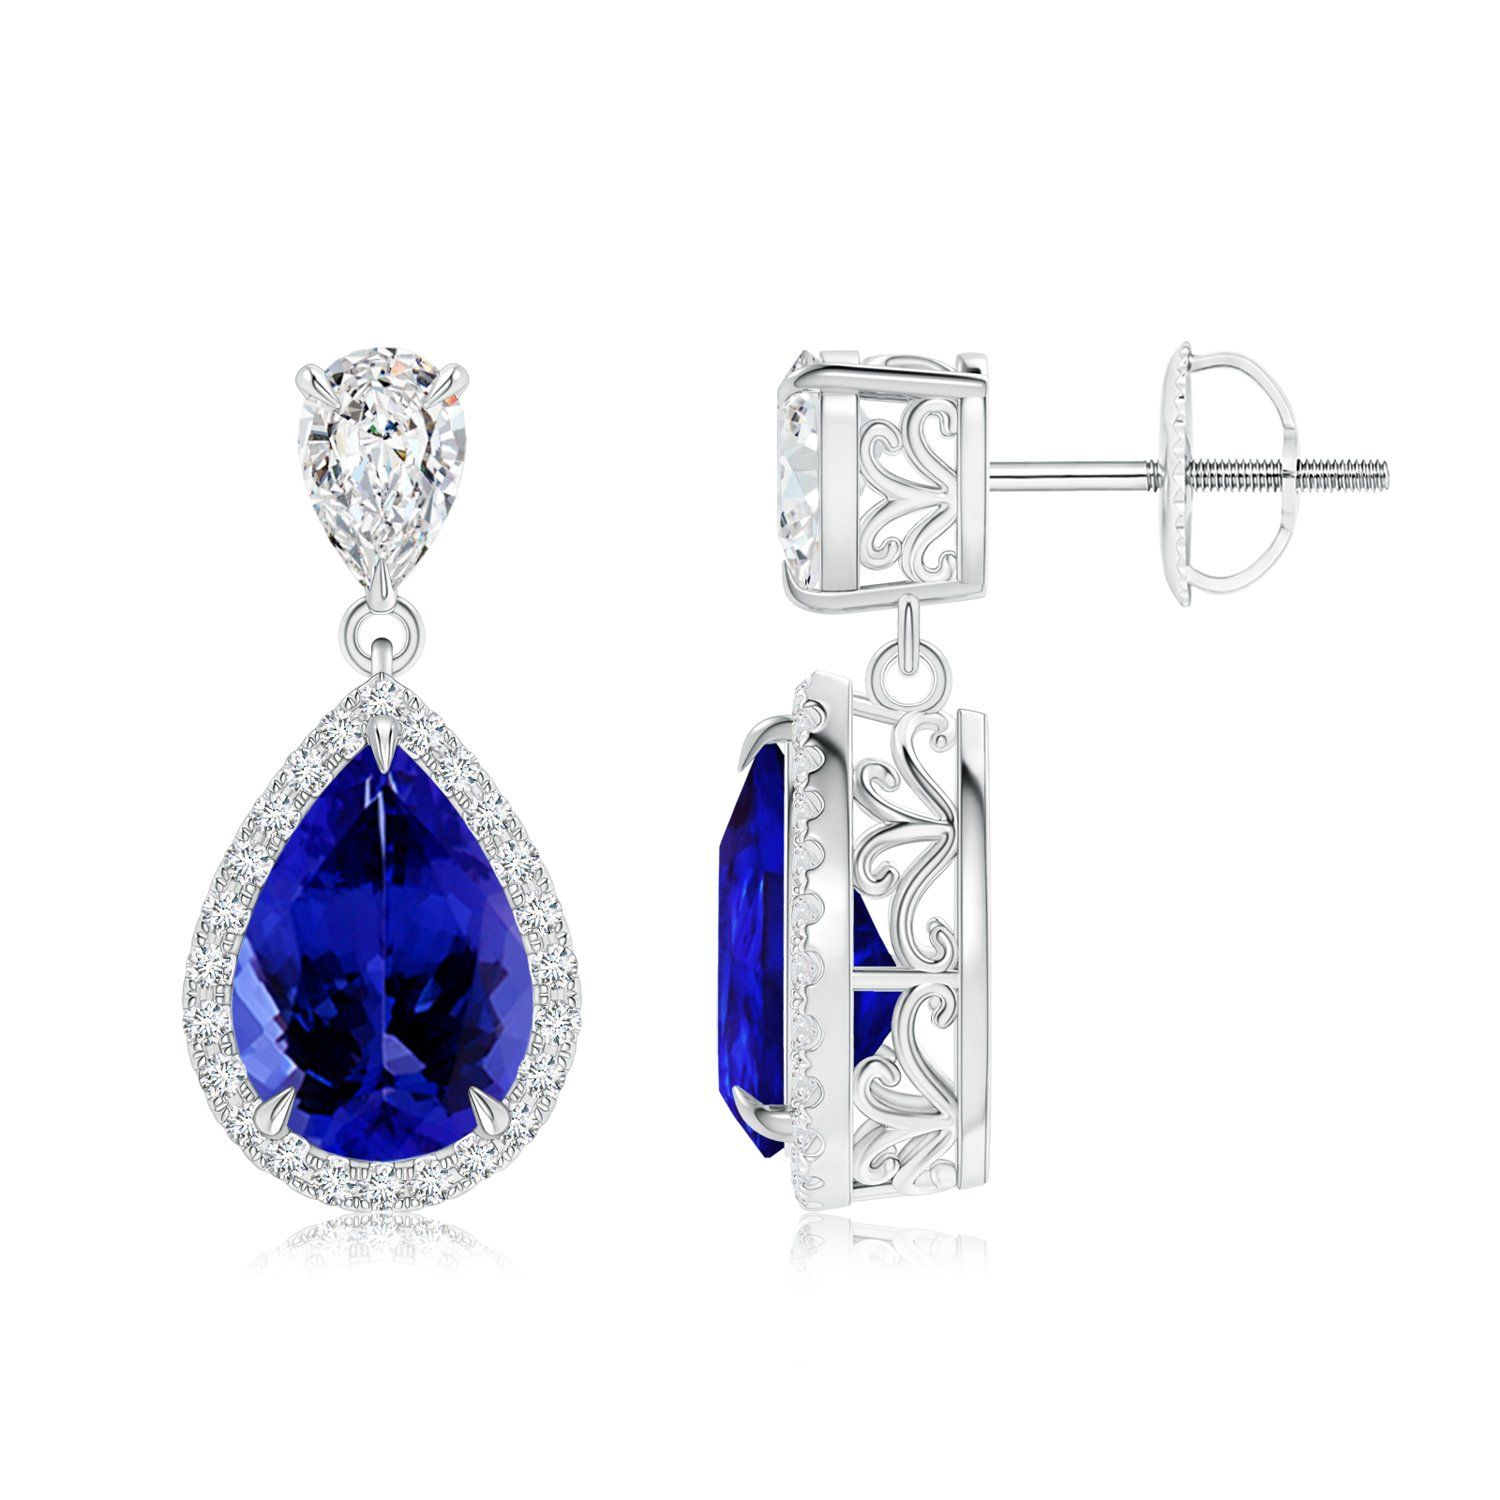 Angara Bezel-Set Tanzanite and Diamond Halo Stud Earrings in Platinum